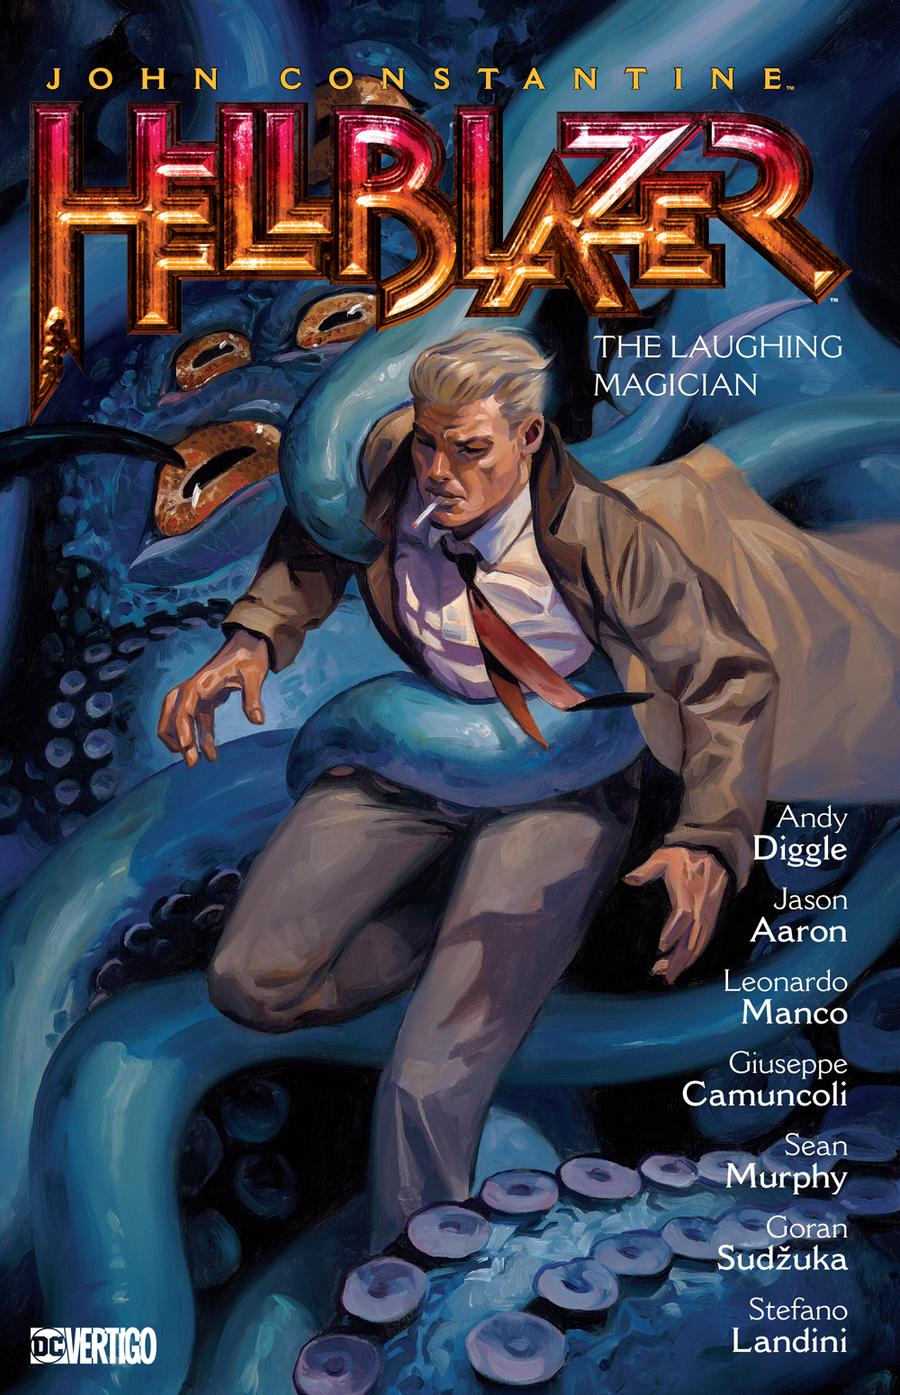 Hellblazer Vol 21 The Laughing Magician TP